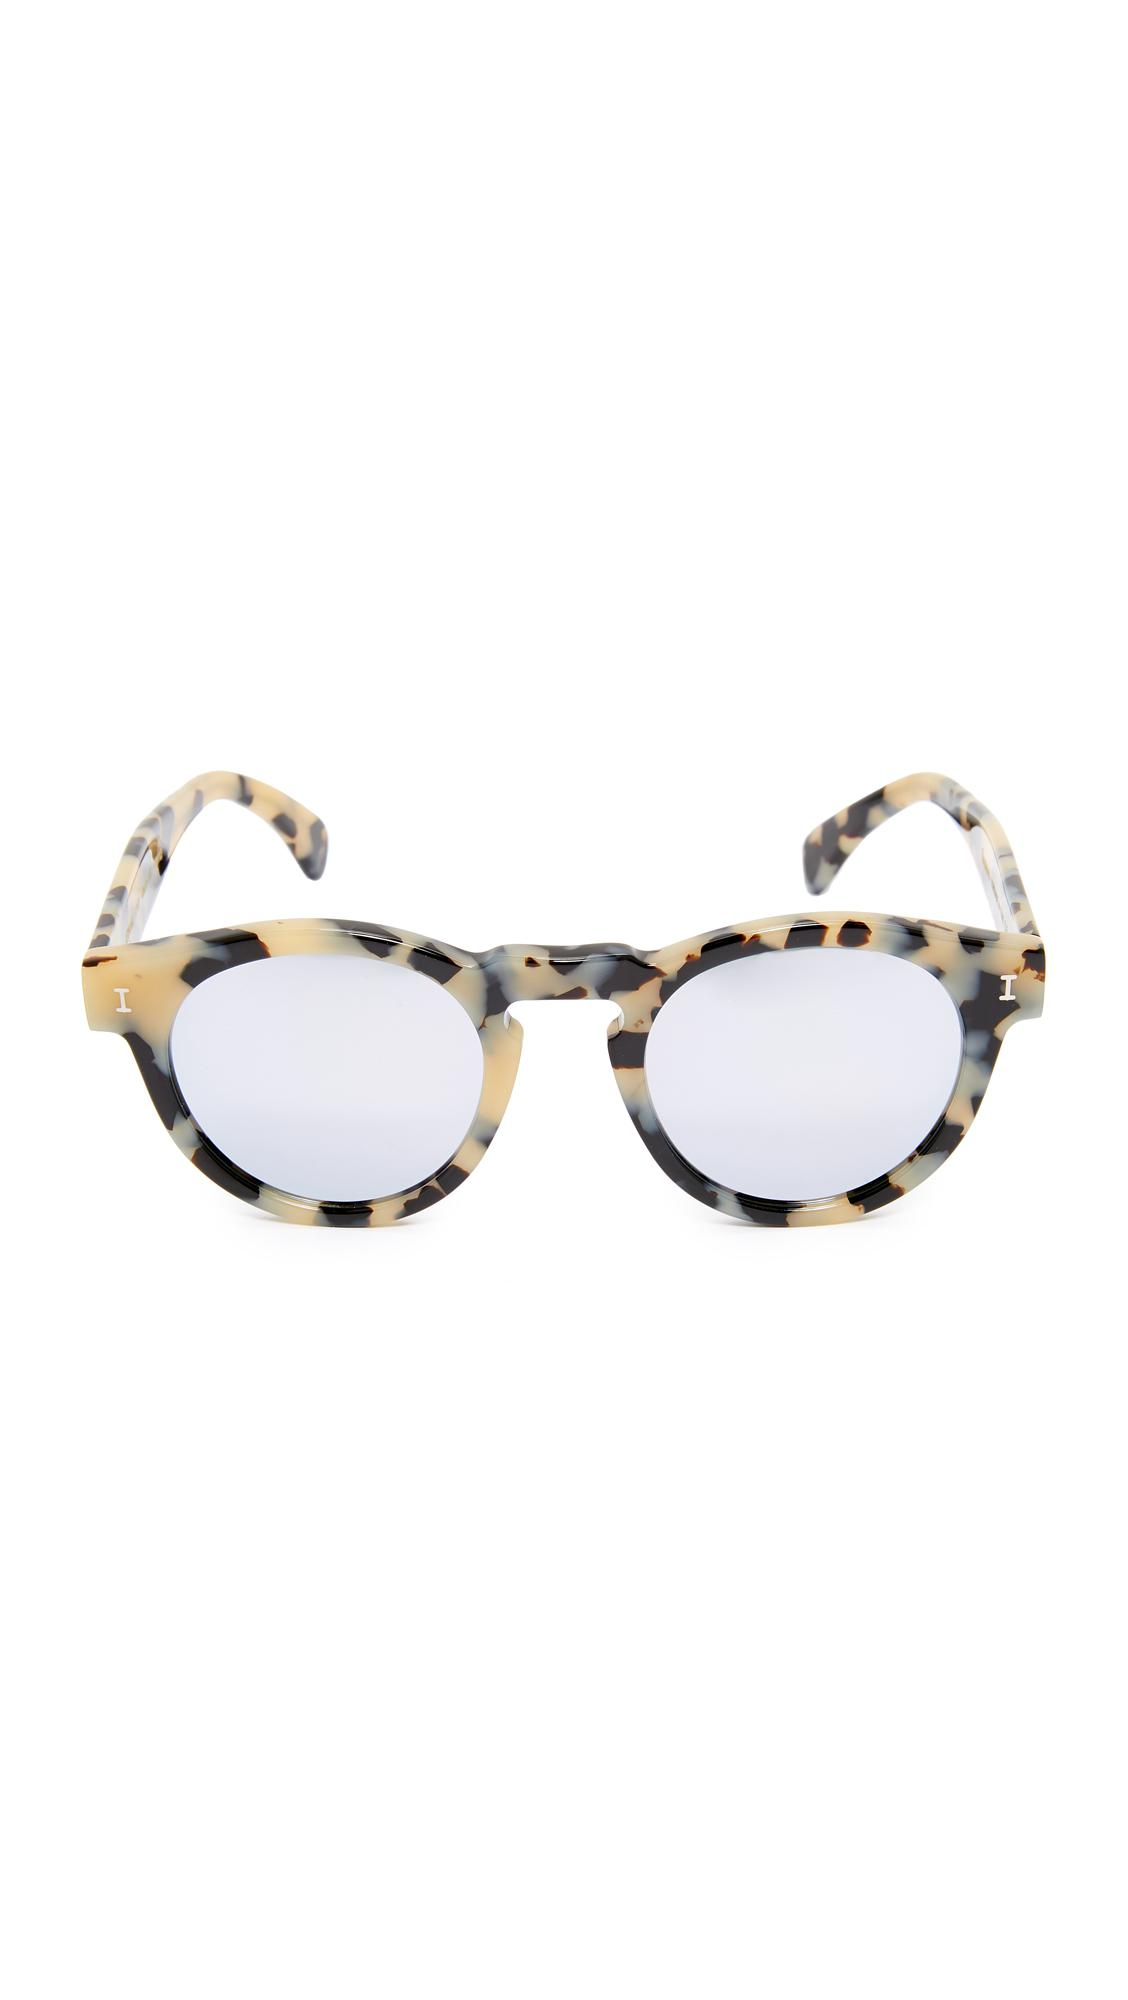 456e0c147a5 Gallery. Previously sold at  Shopbop · Women s Mirrored Sunglasses ...